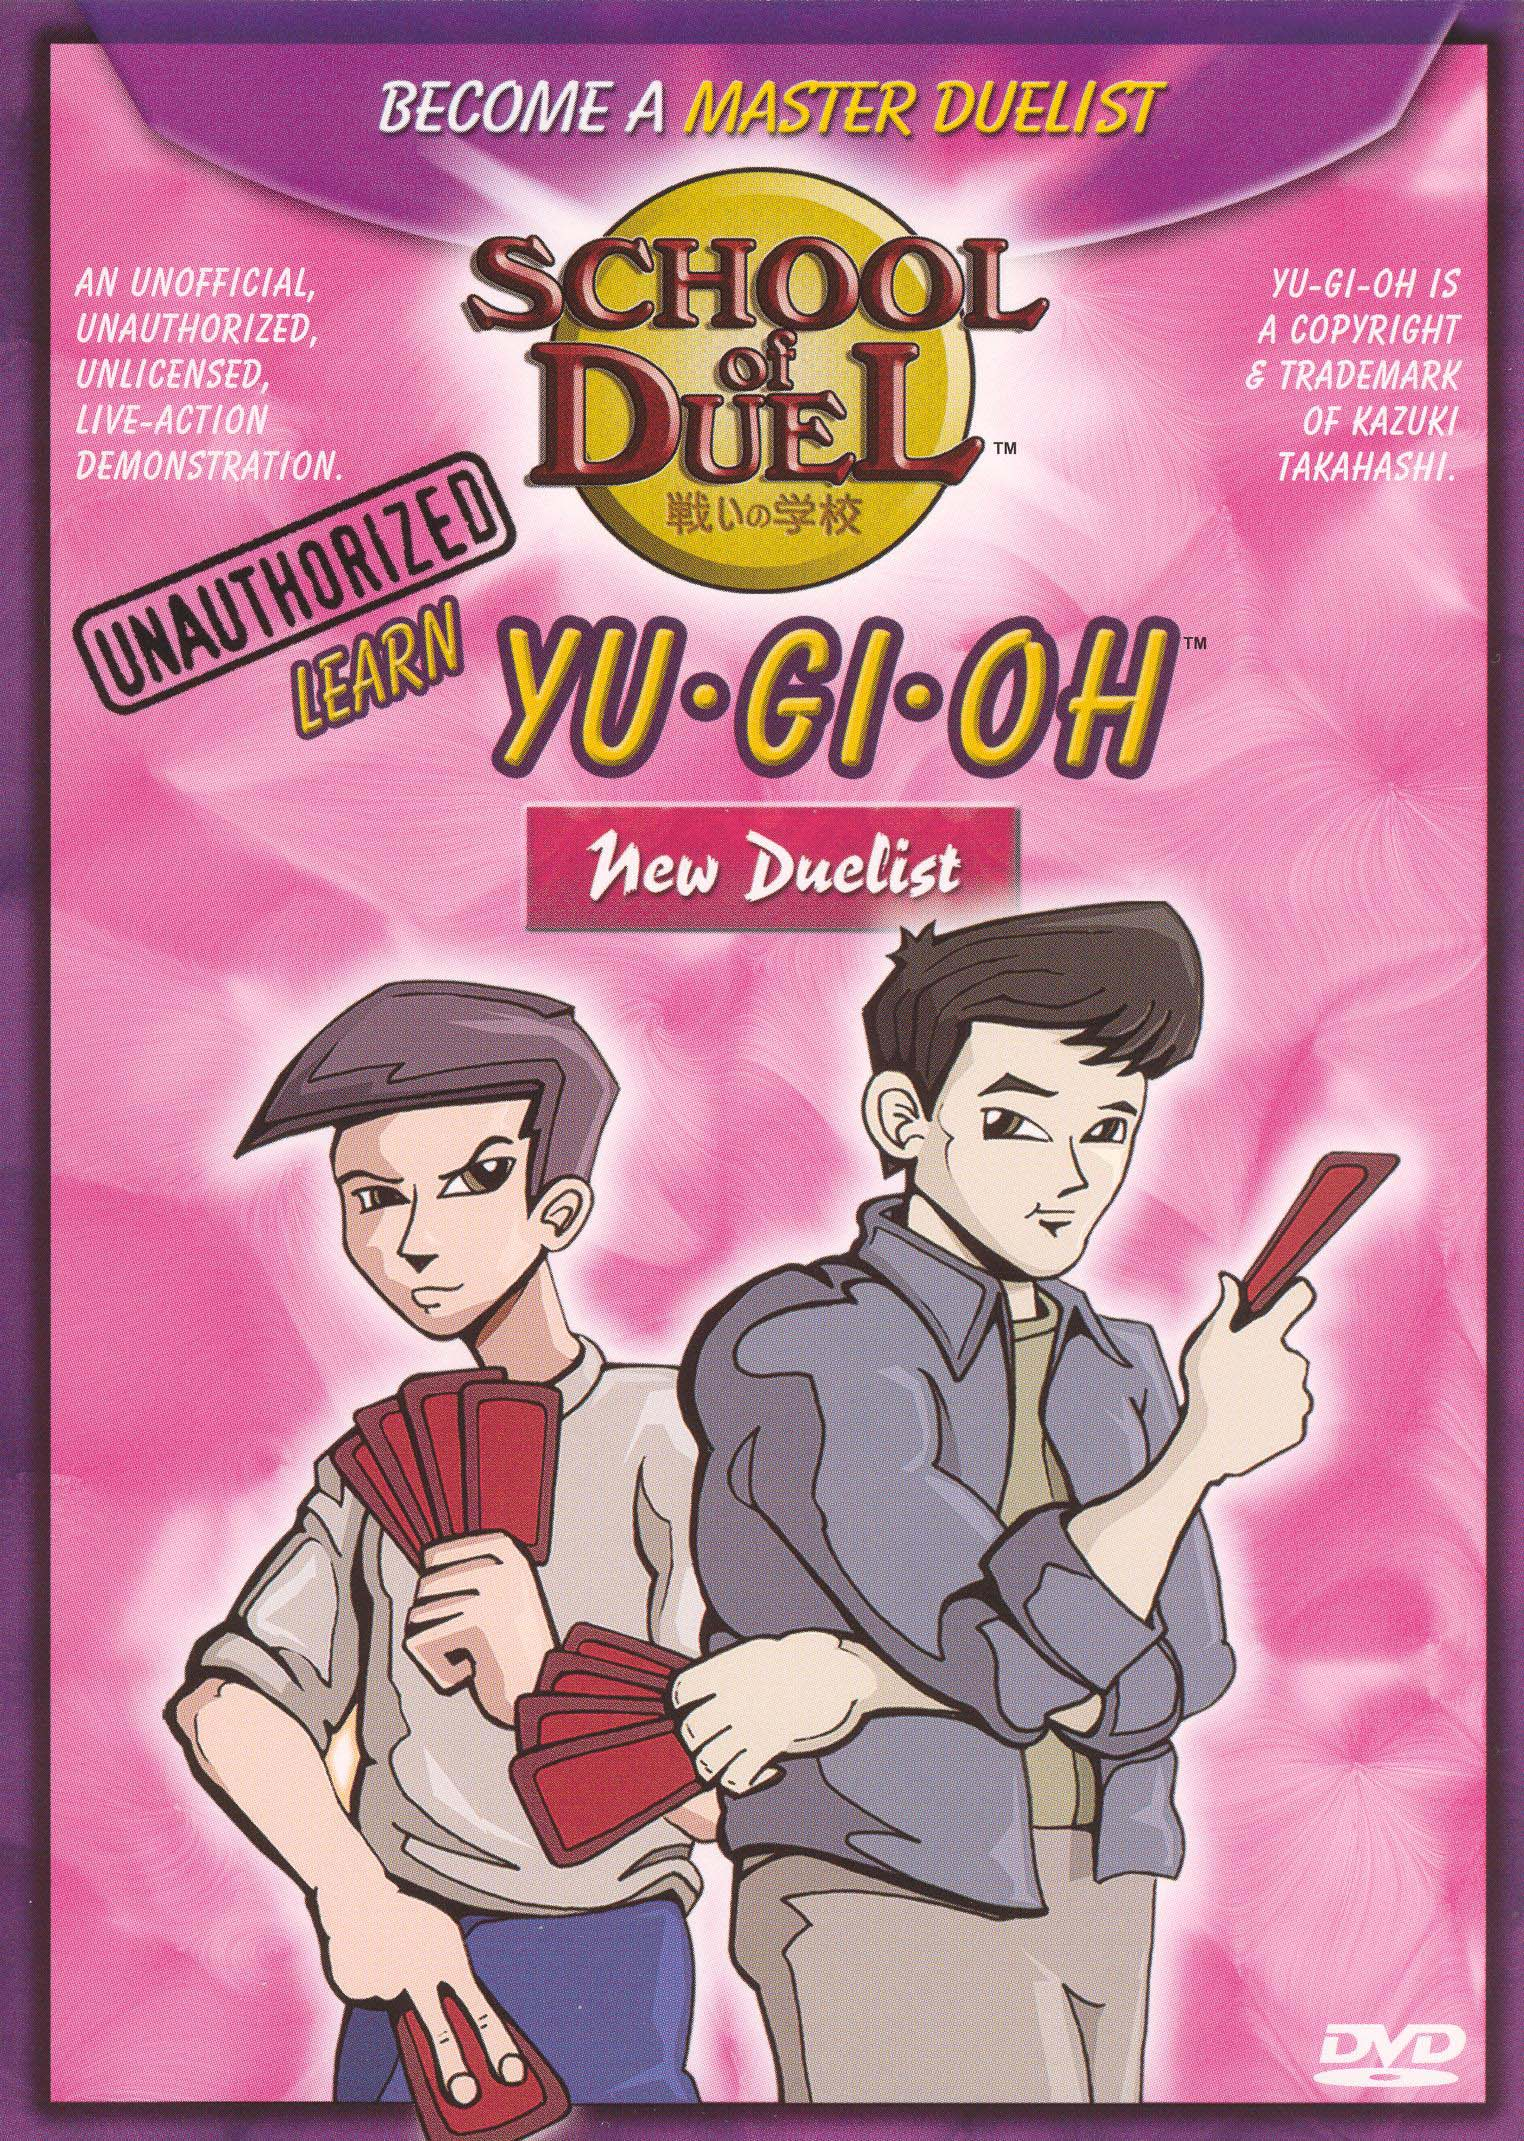 School of Duel: Learn Yu-Gi-Oh - New Duelist